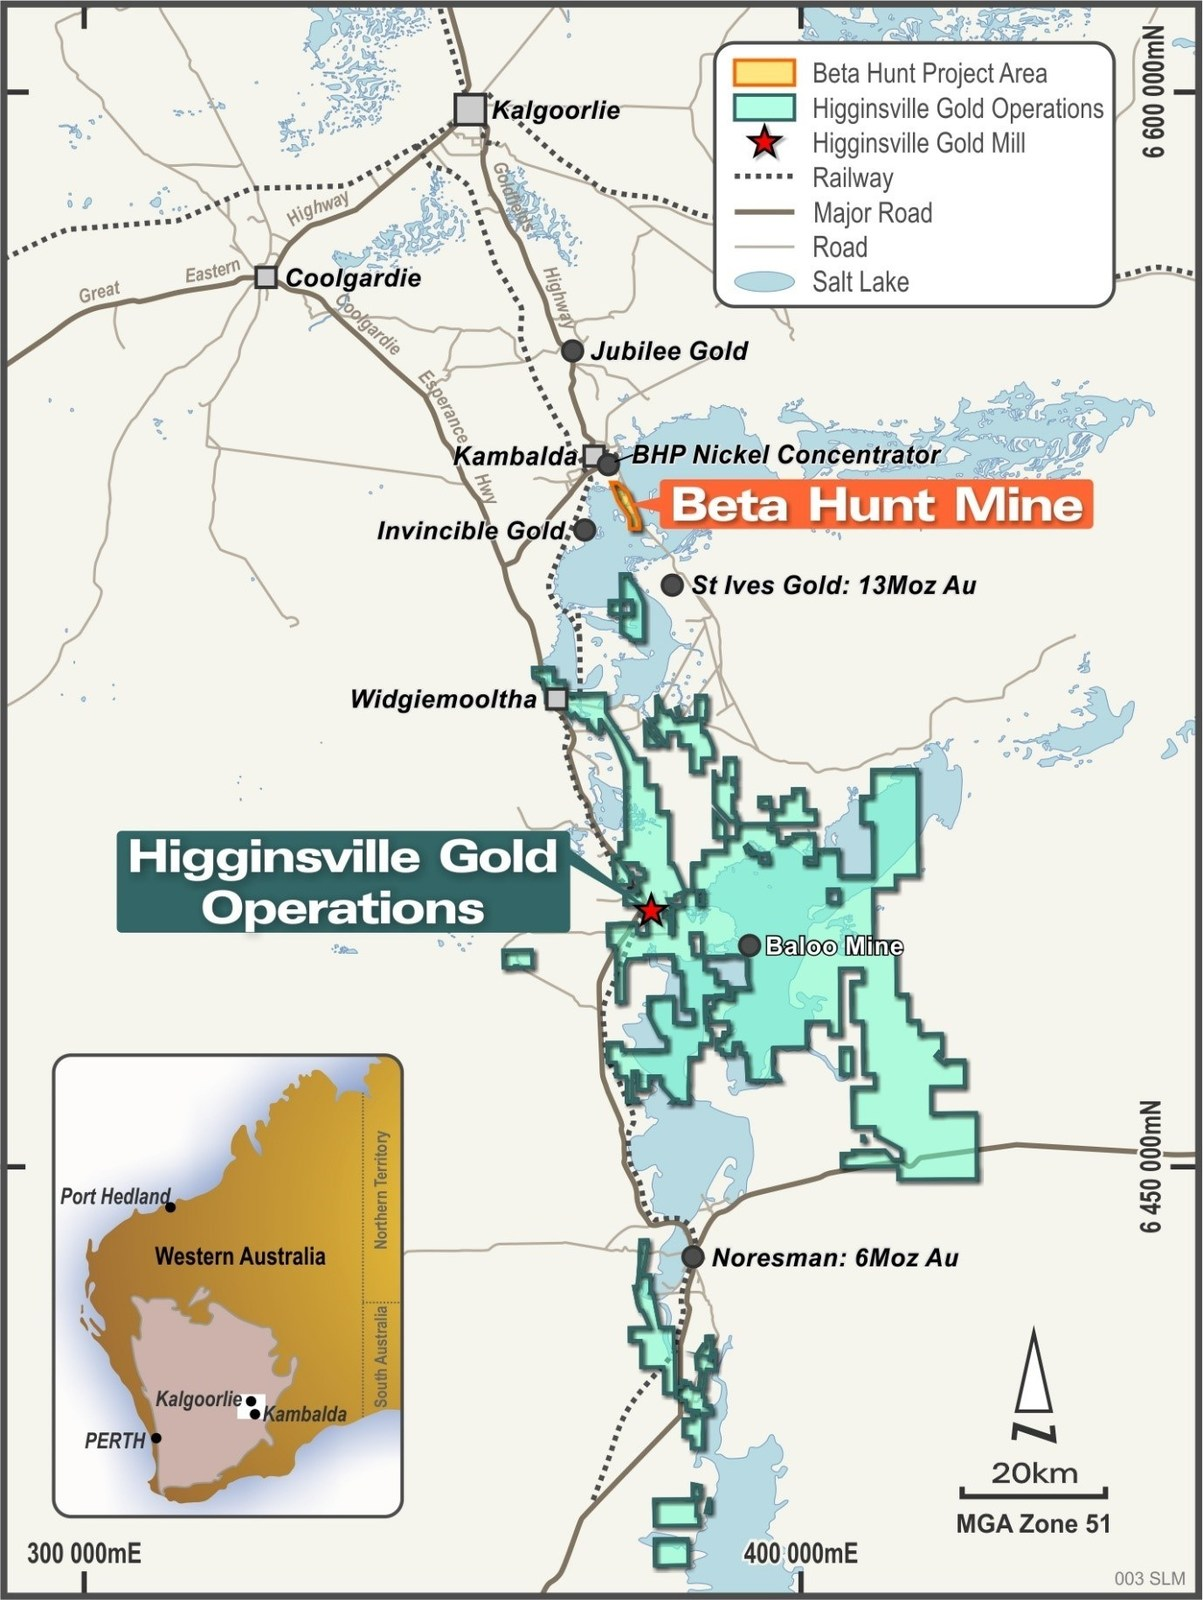 Figure 1:  Integrated Beta Hunt – Higginsville Gold Operations